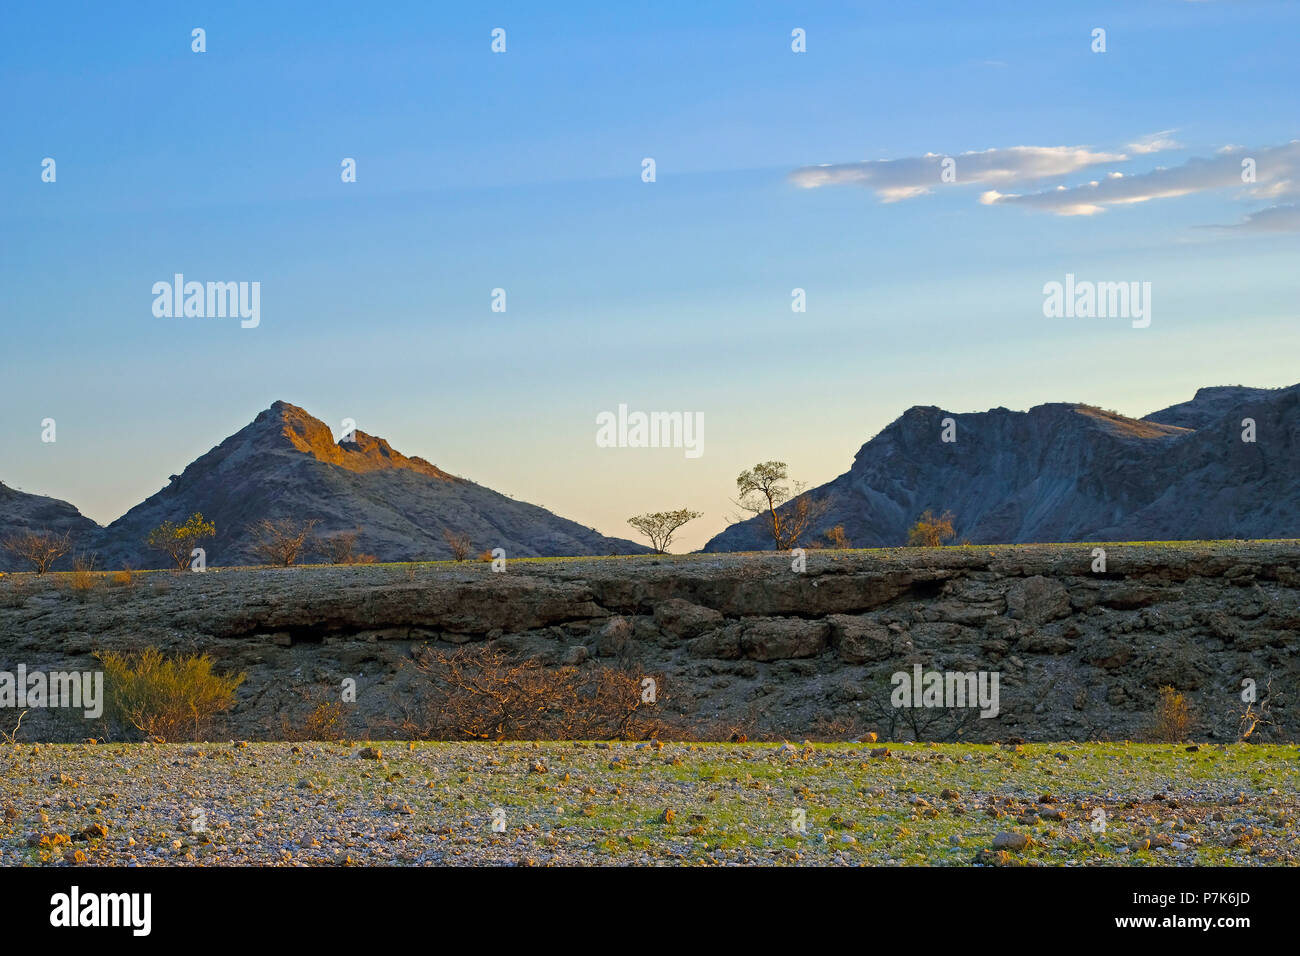 dry riverbed in plain with marble pebbles and mountains in the background just after sunset in Namibia, Kaokoland - Stock Image